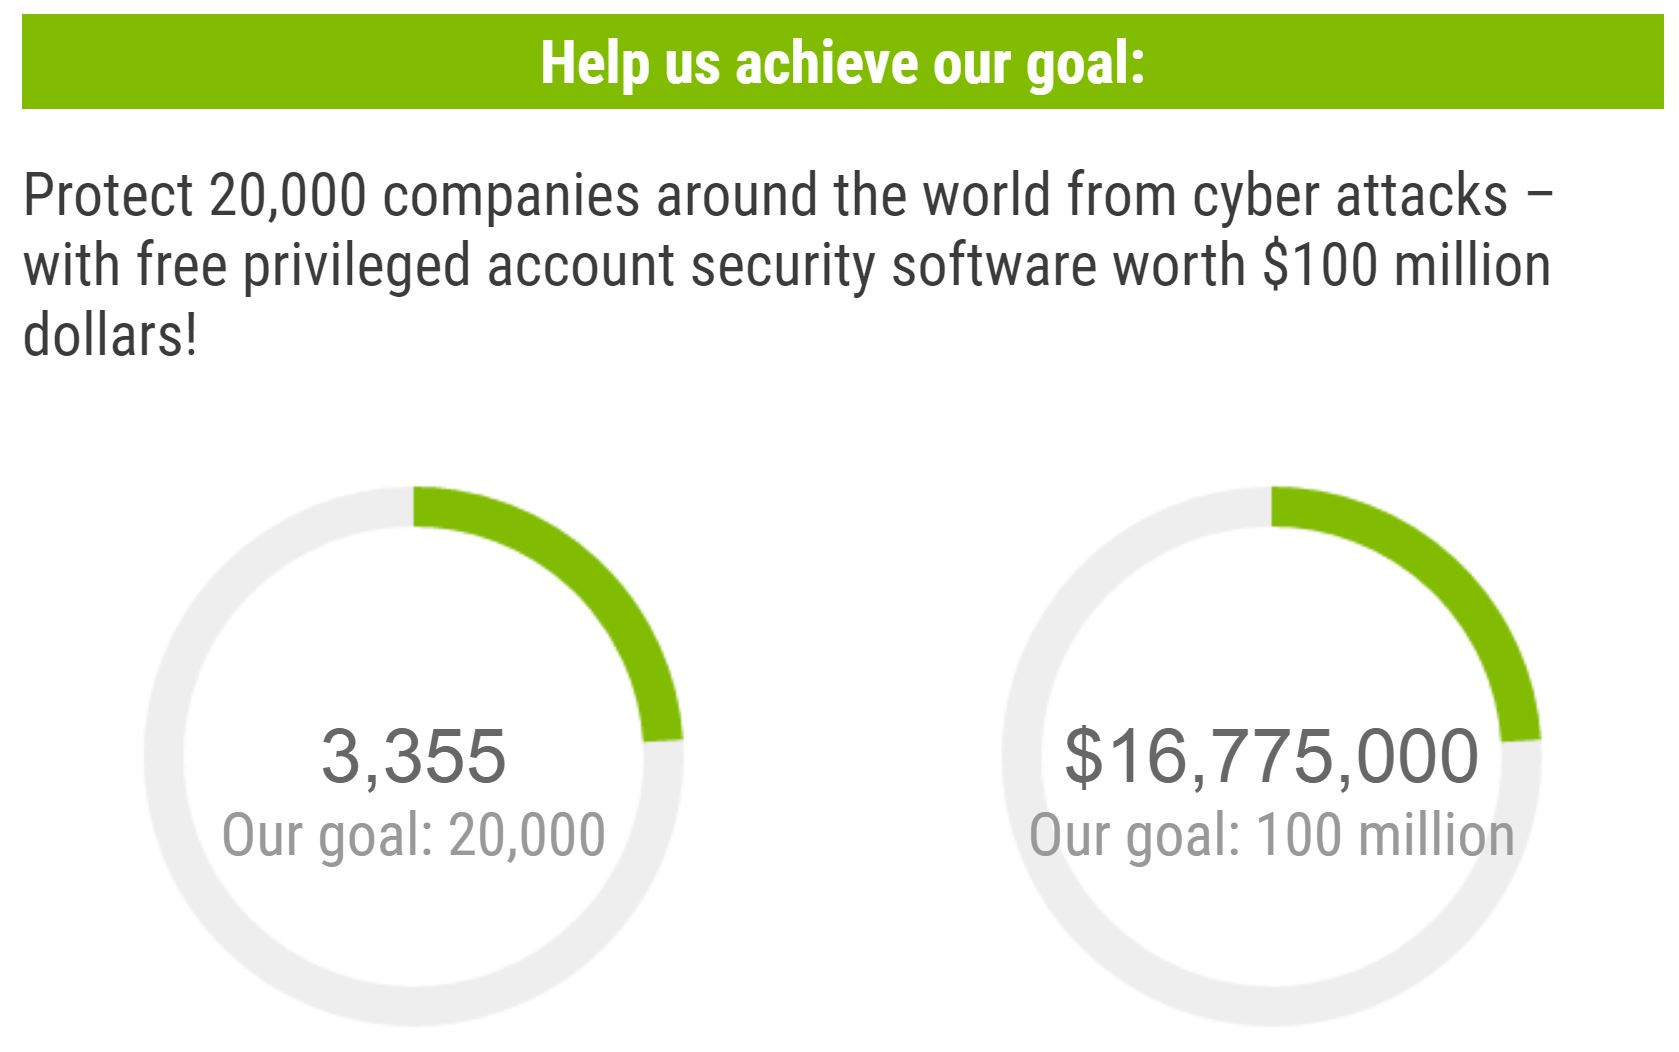 Protecting companies around the world from cyber attacks with free privileged account security software!